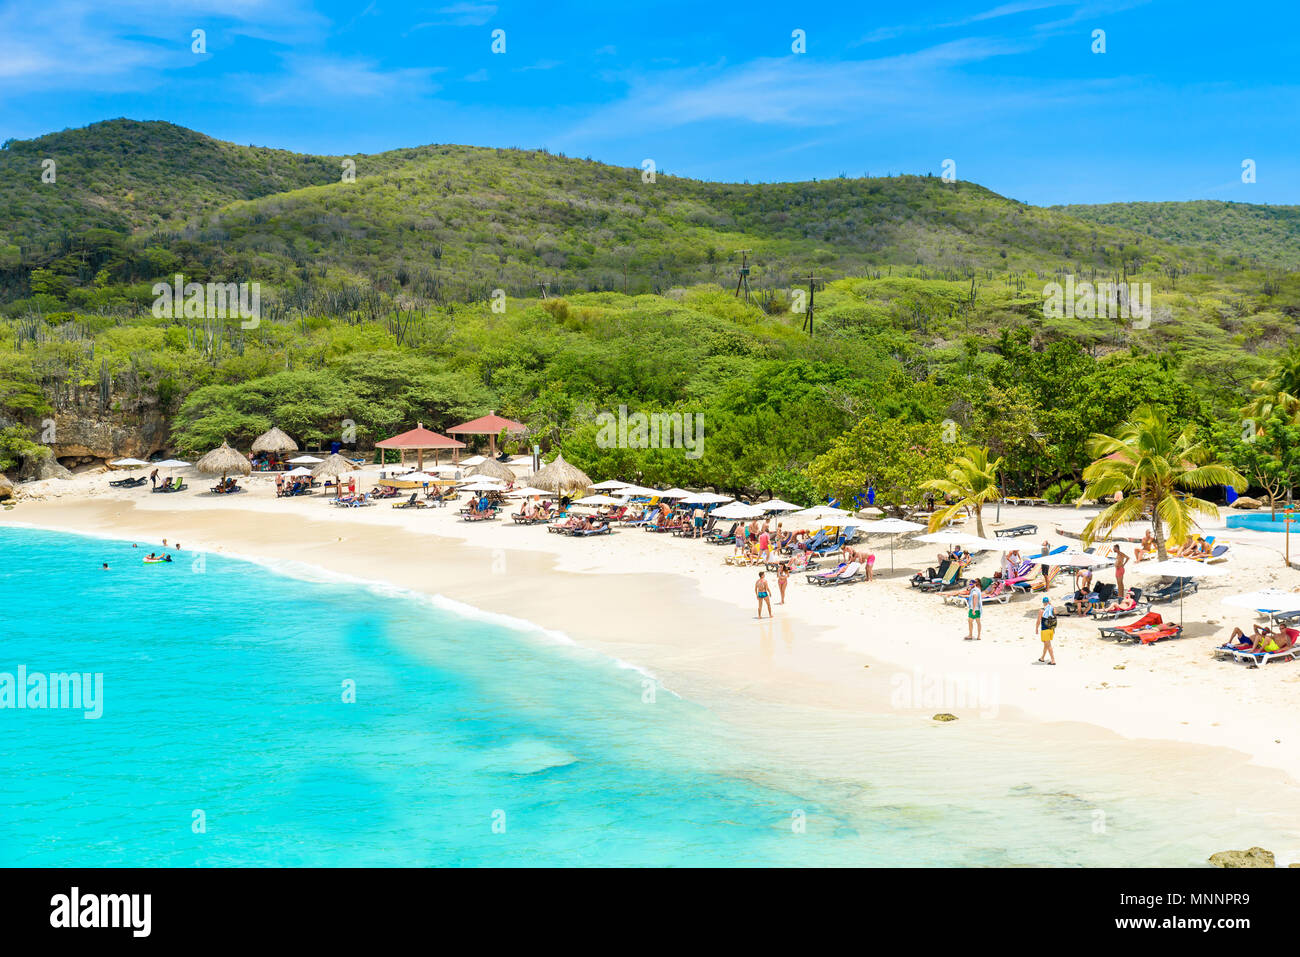 Explore The Beauty Of Caribbean: Grote Knip Beach, Curacao, Netherlands Antilles